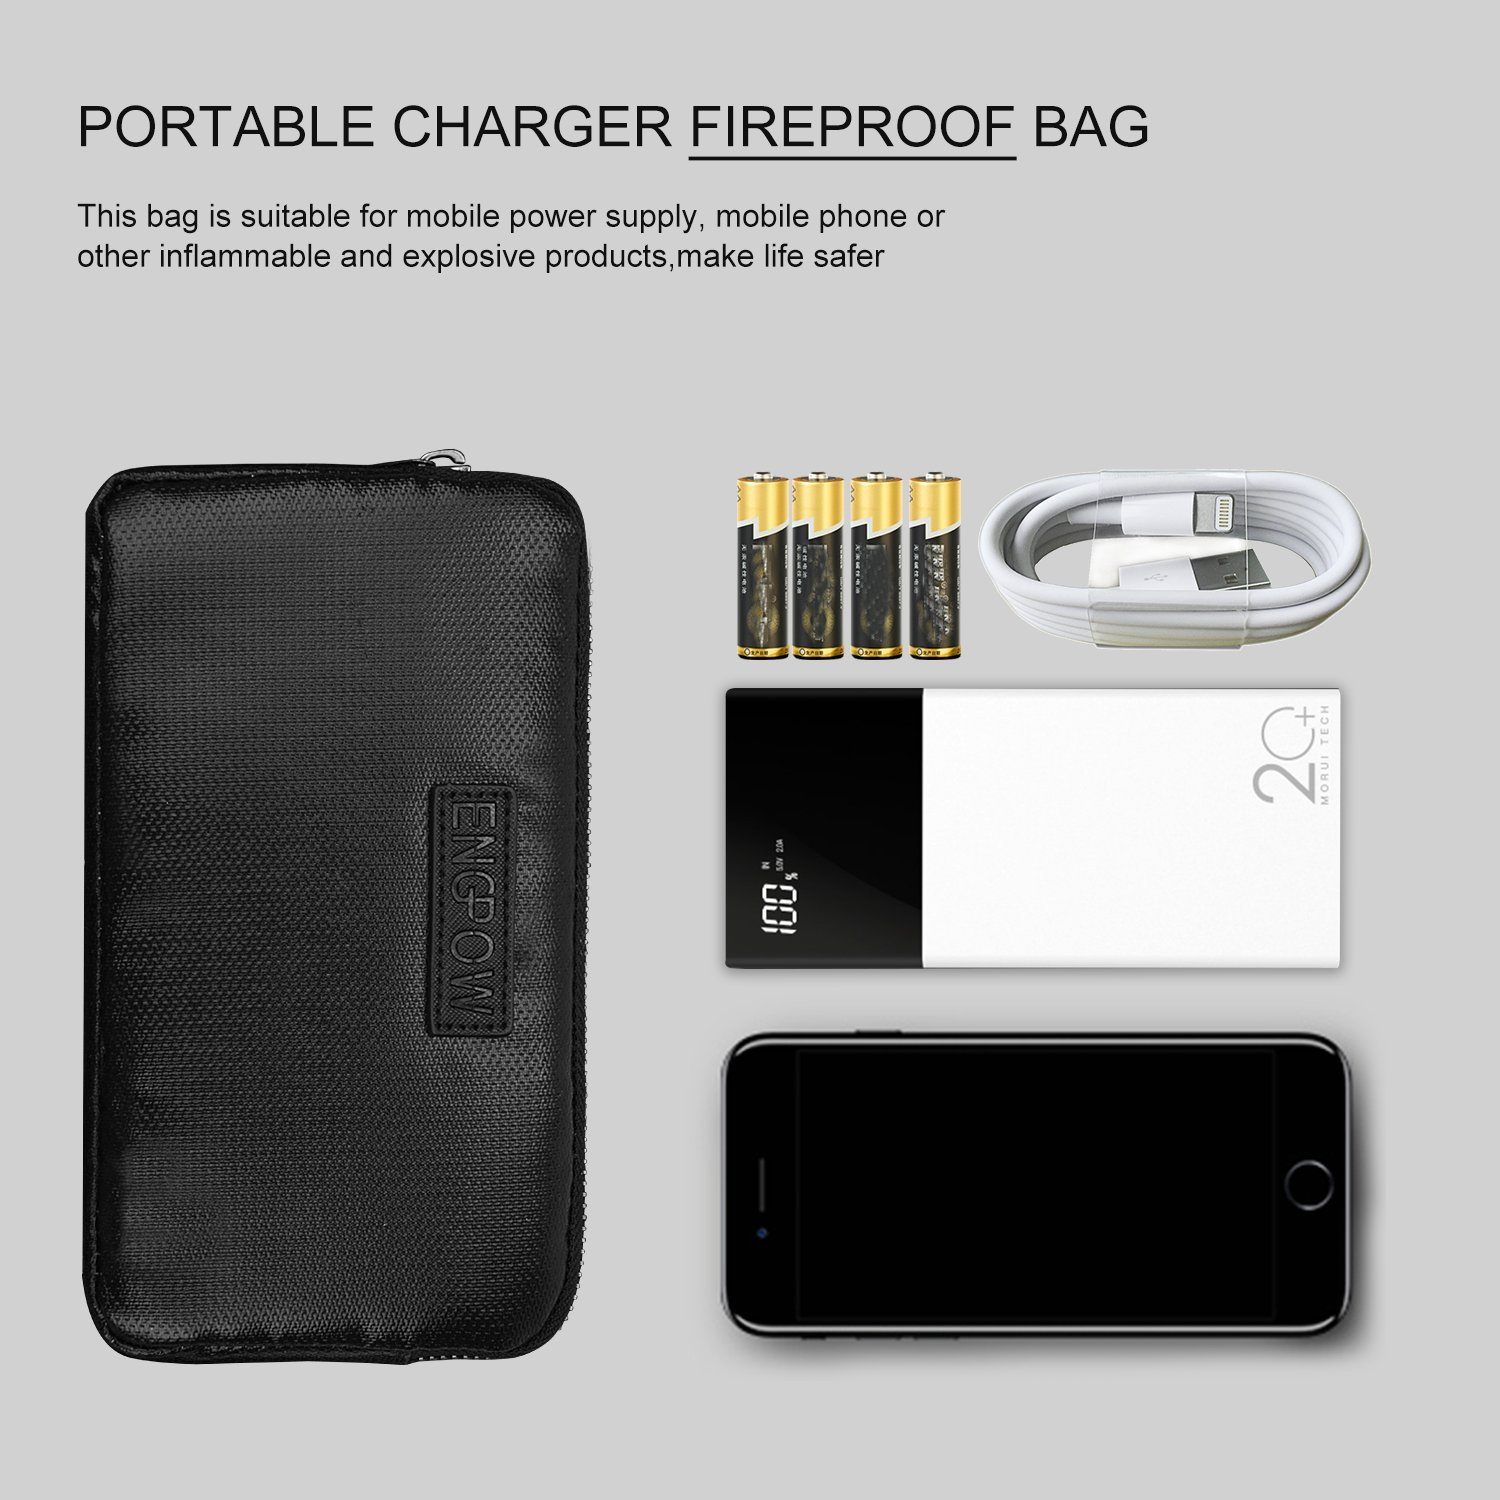 Fireproof Power Bank Carrying Case ENGPOW Portable Charger Carrying Travel Case Money Bag for Anker 20000mAh 20100mAh 22000mAh 26000mAh Ultra High Capacity Power Bank External Battery Pack Case